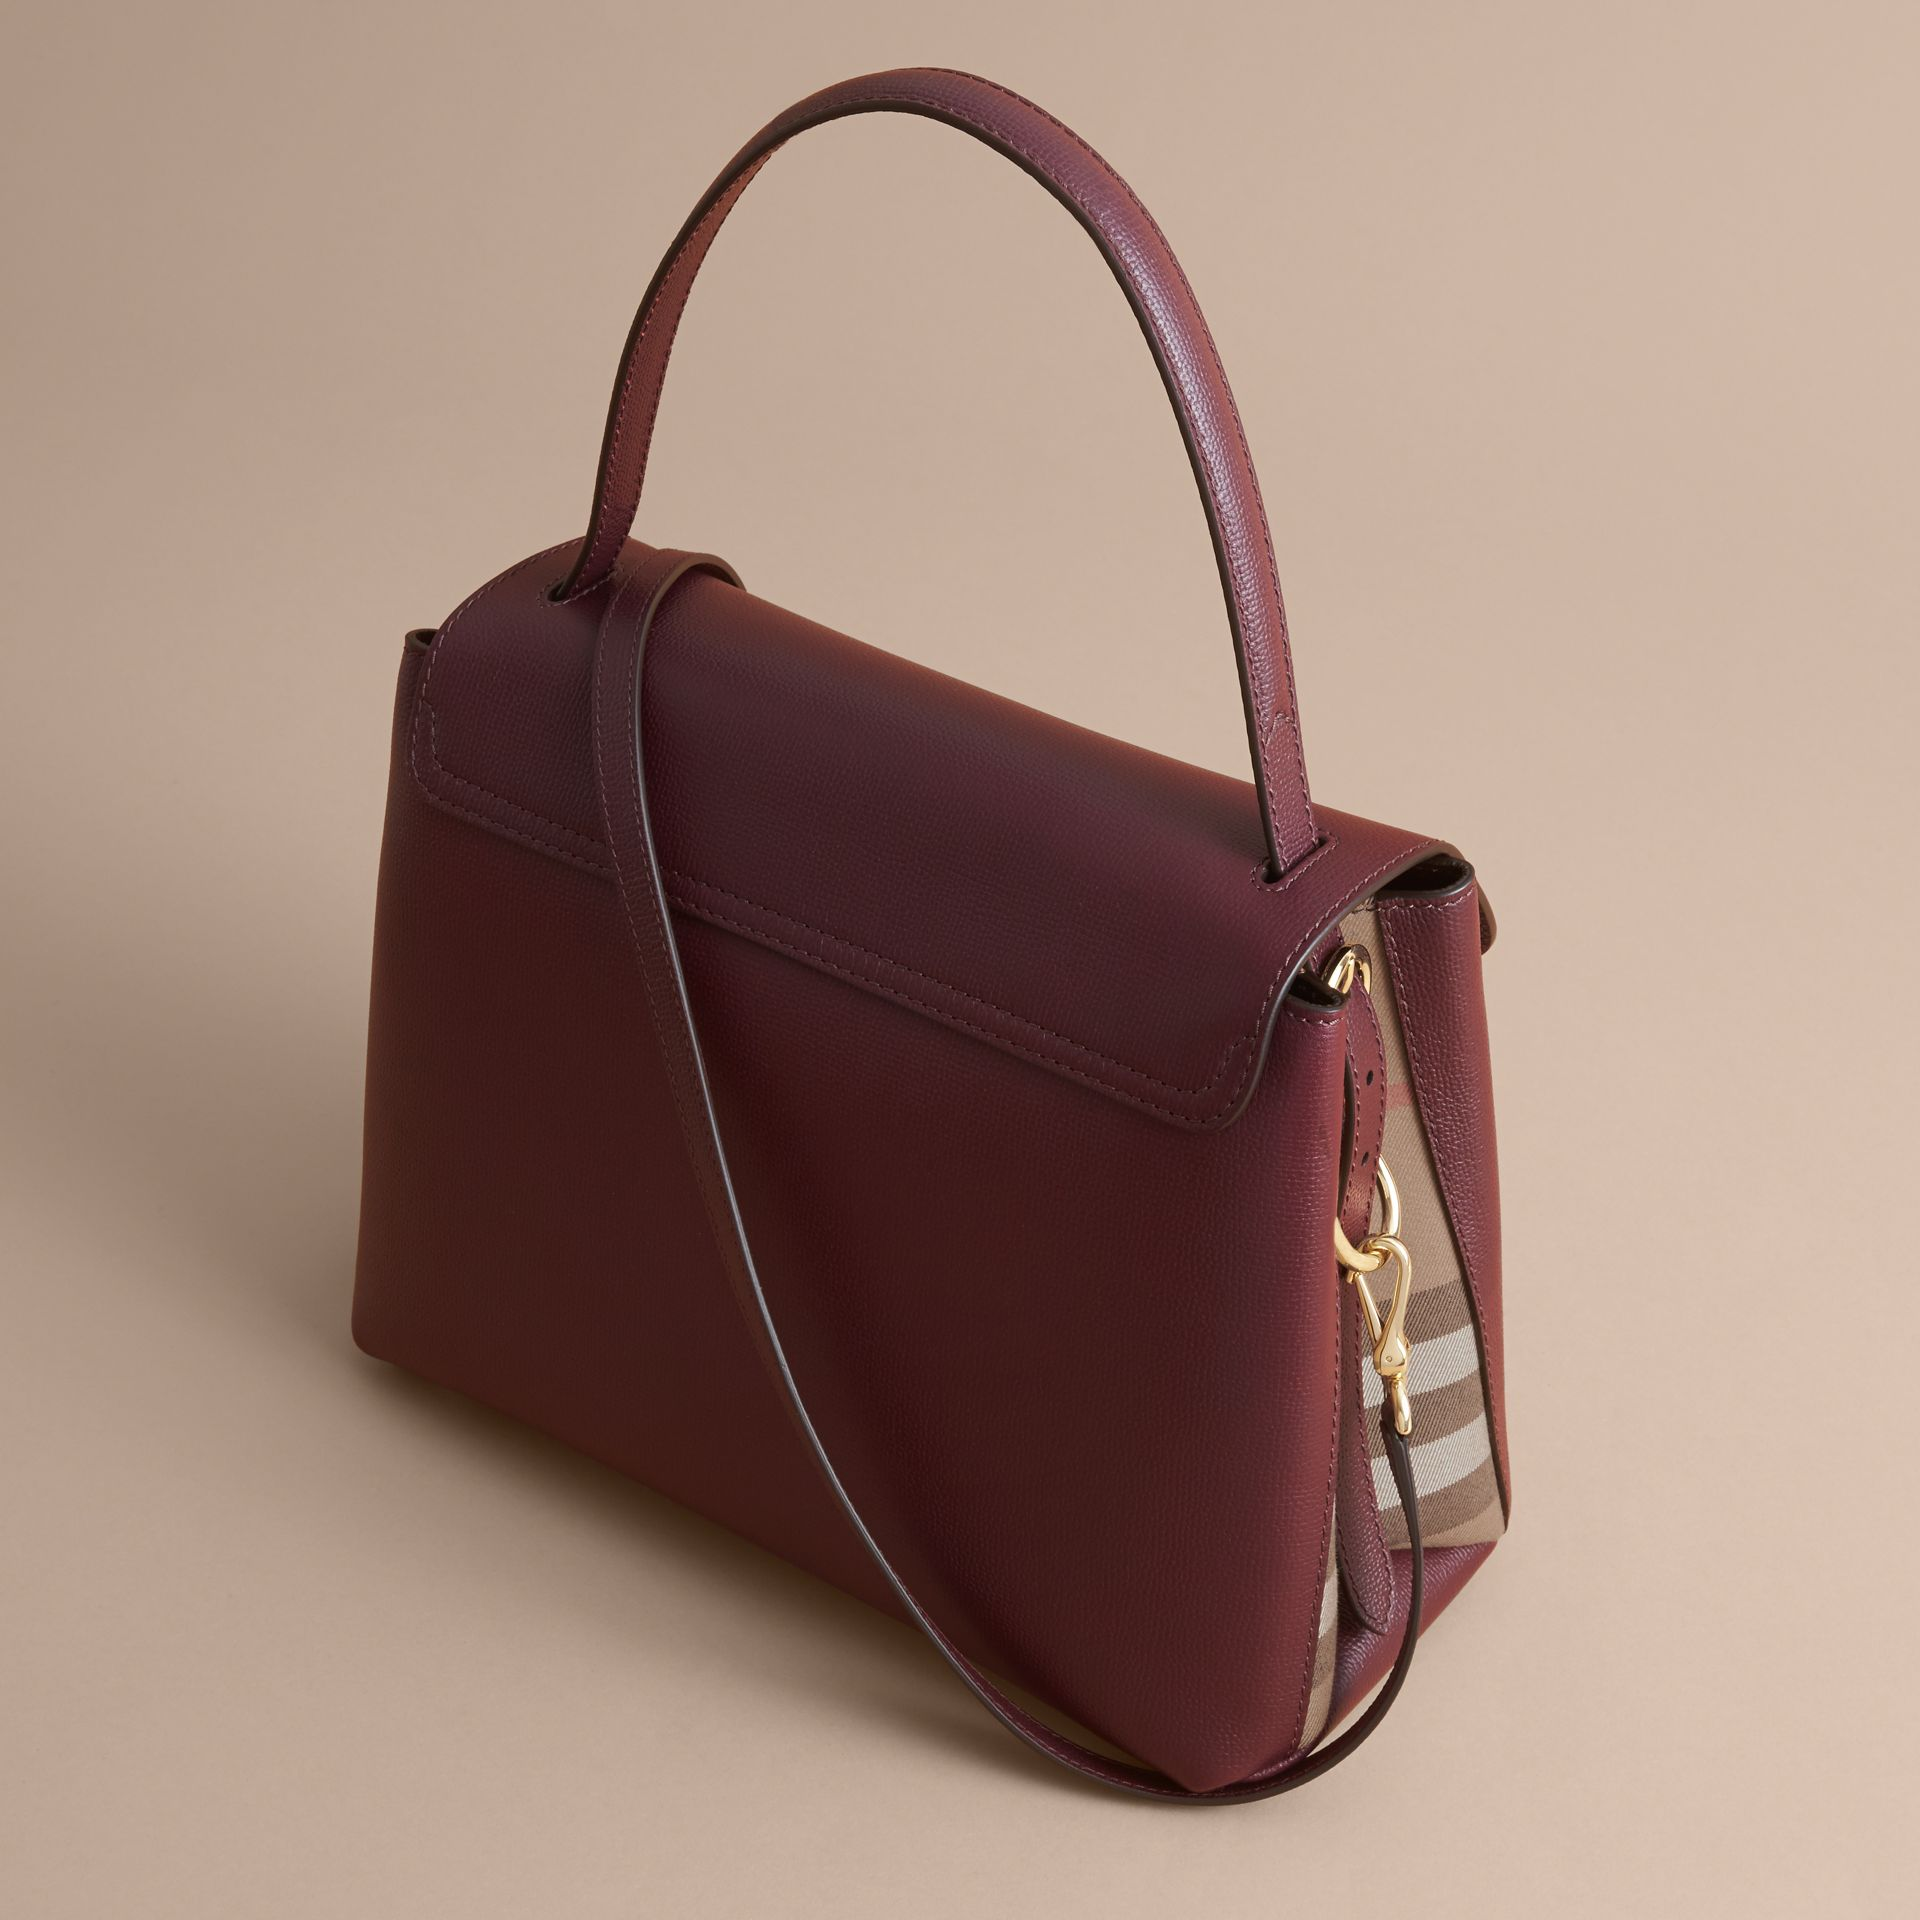 Medium Grainy Leather and House Check Tote Bag in Mahogany Red - Women | Burberry United Kingdom - gallery image 5